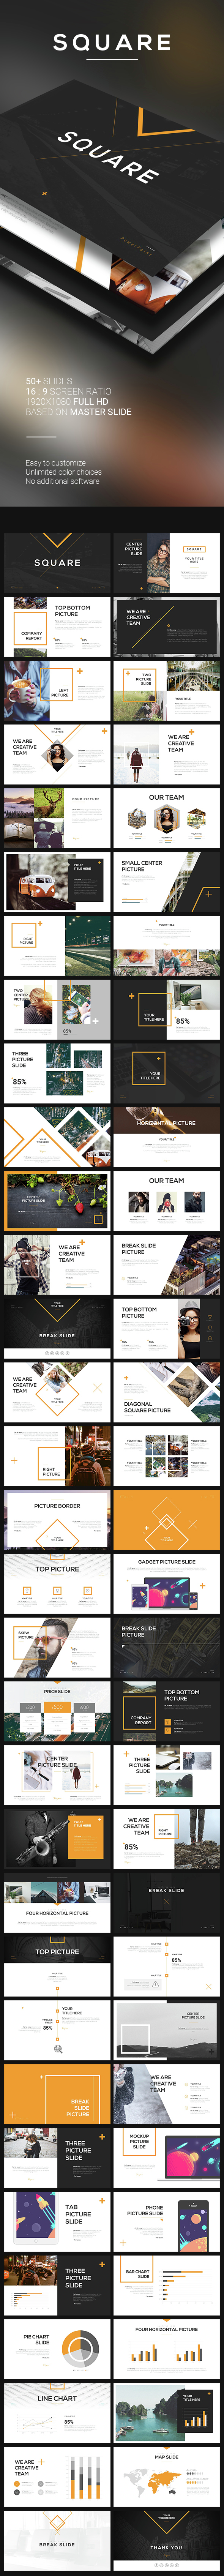 Square powerpoint template by angkalimabelas graphicriver square powerpoint template powerpoint templates presentation templates toneelgroepblik Image collections